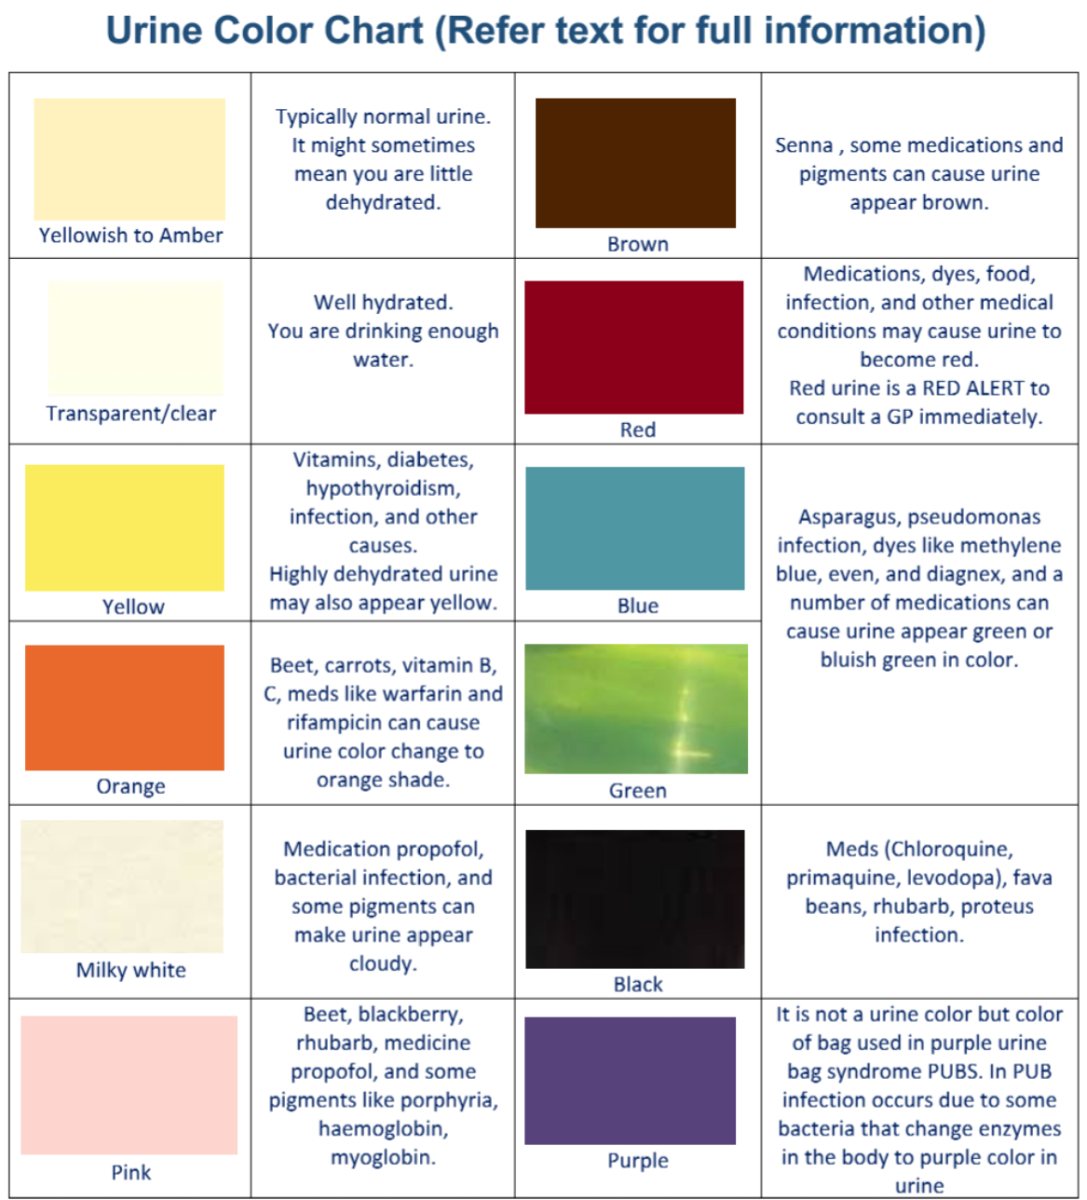 Urine Colors Chart : Medications and Food Can Change Urine Color